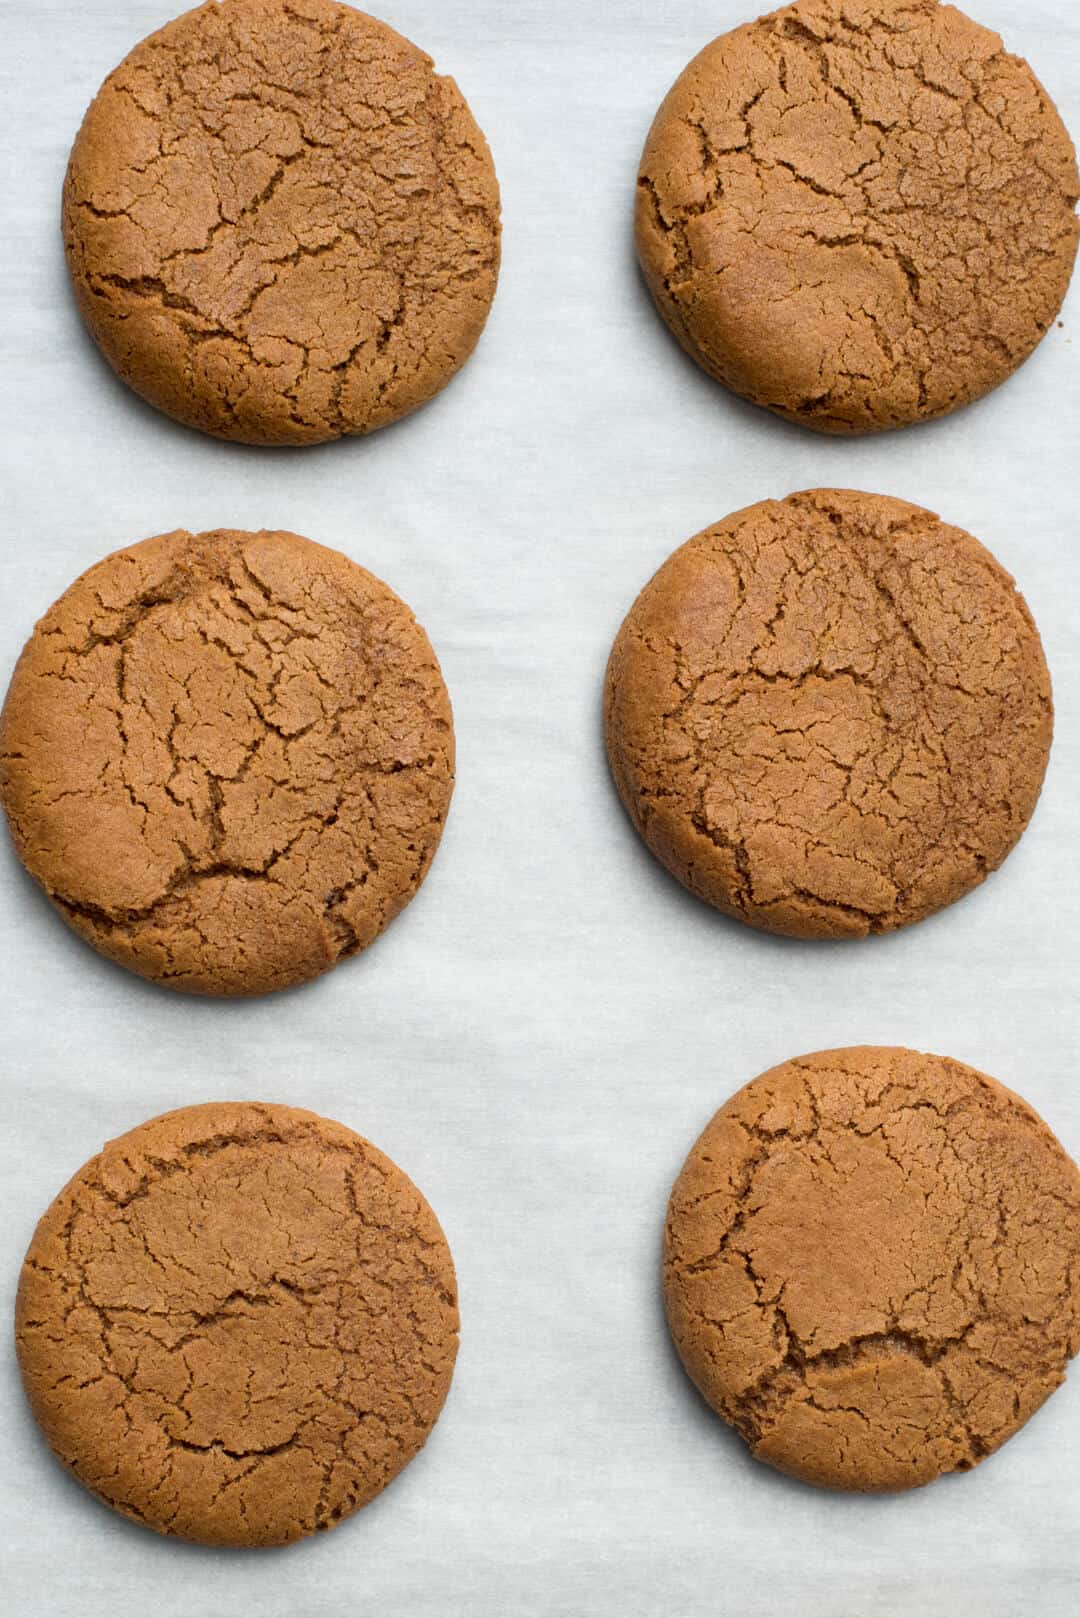 These Chewy Iced Molasses Cookies have a fabulous soft and chewy texture and are filled with the classic flavors of molasses, cinnamon, and ginger. A holiday classic!